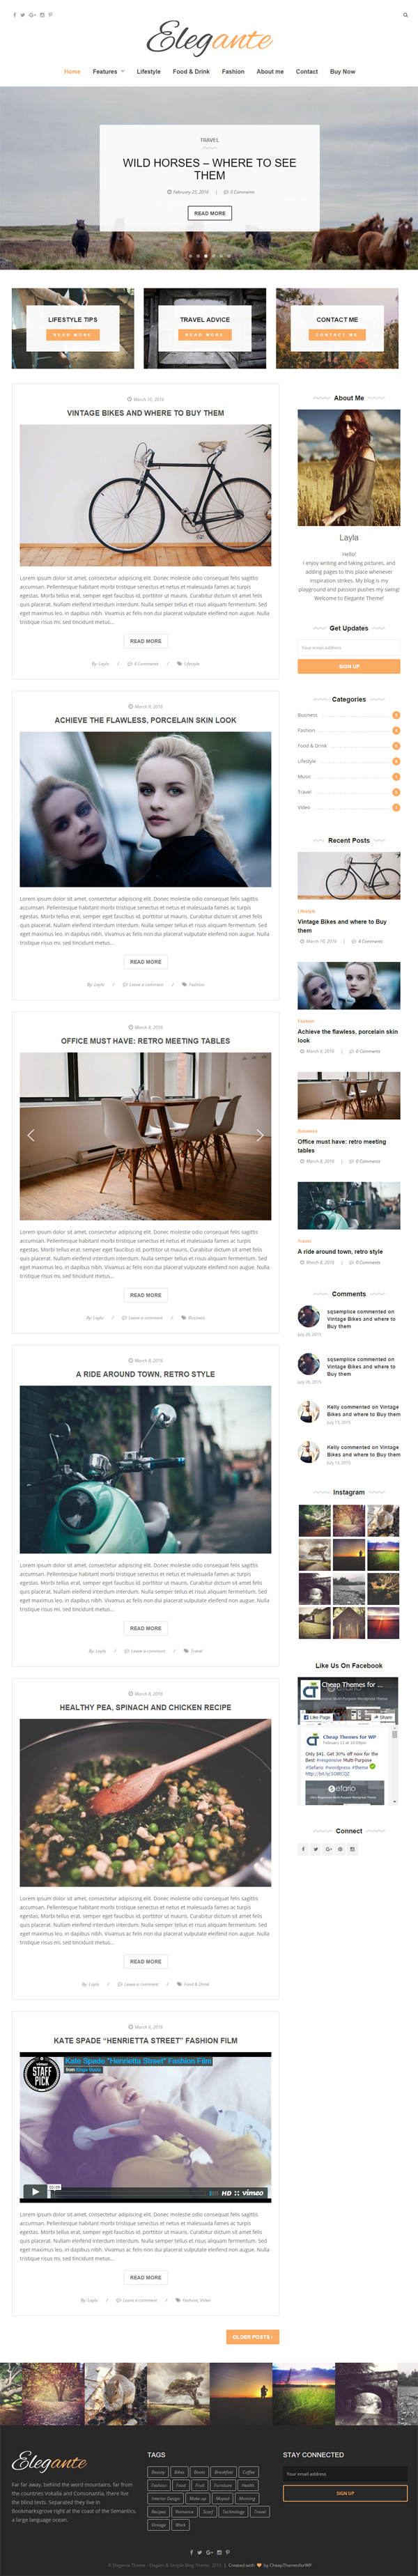 Elegante - Clean & Elegant WordPress Blog Theme